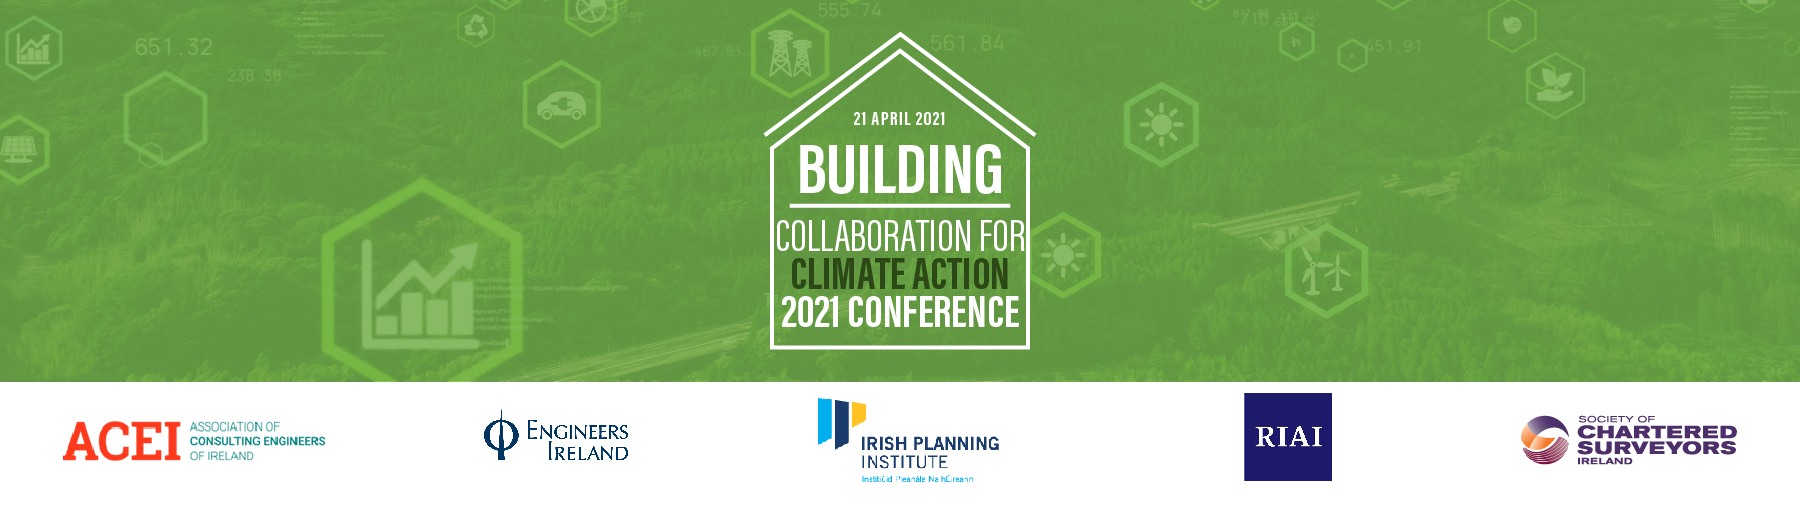 Building Collaboration for Climate Action  2021